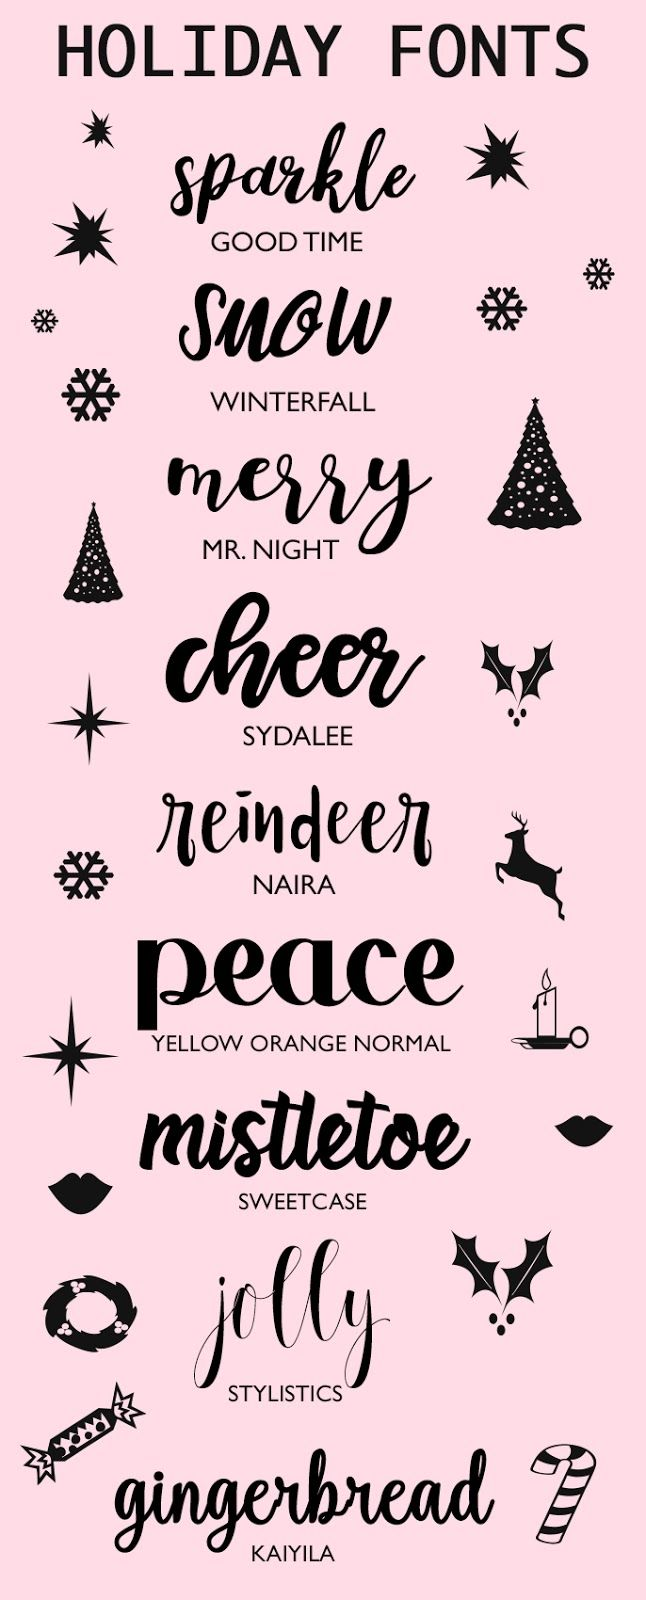 Fonts To Make Your Holidays Sparkle | Christmas | Pinterest ...